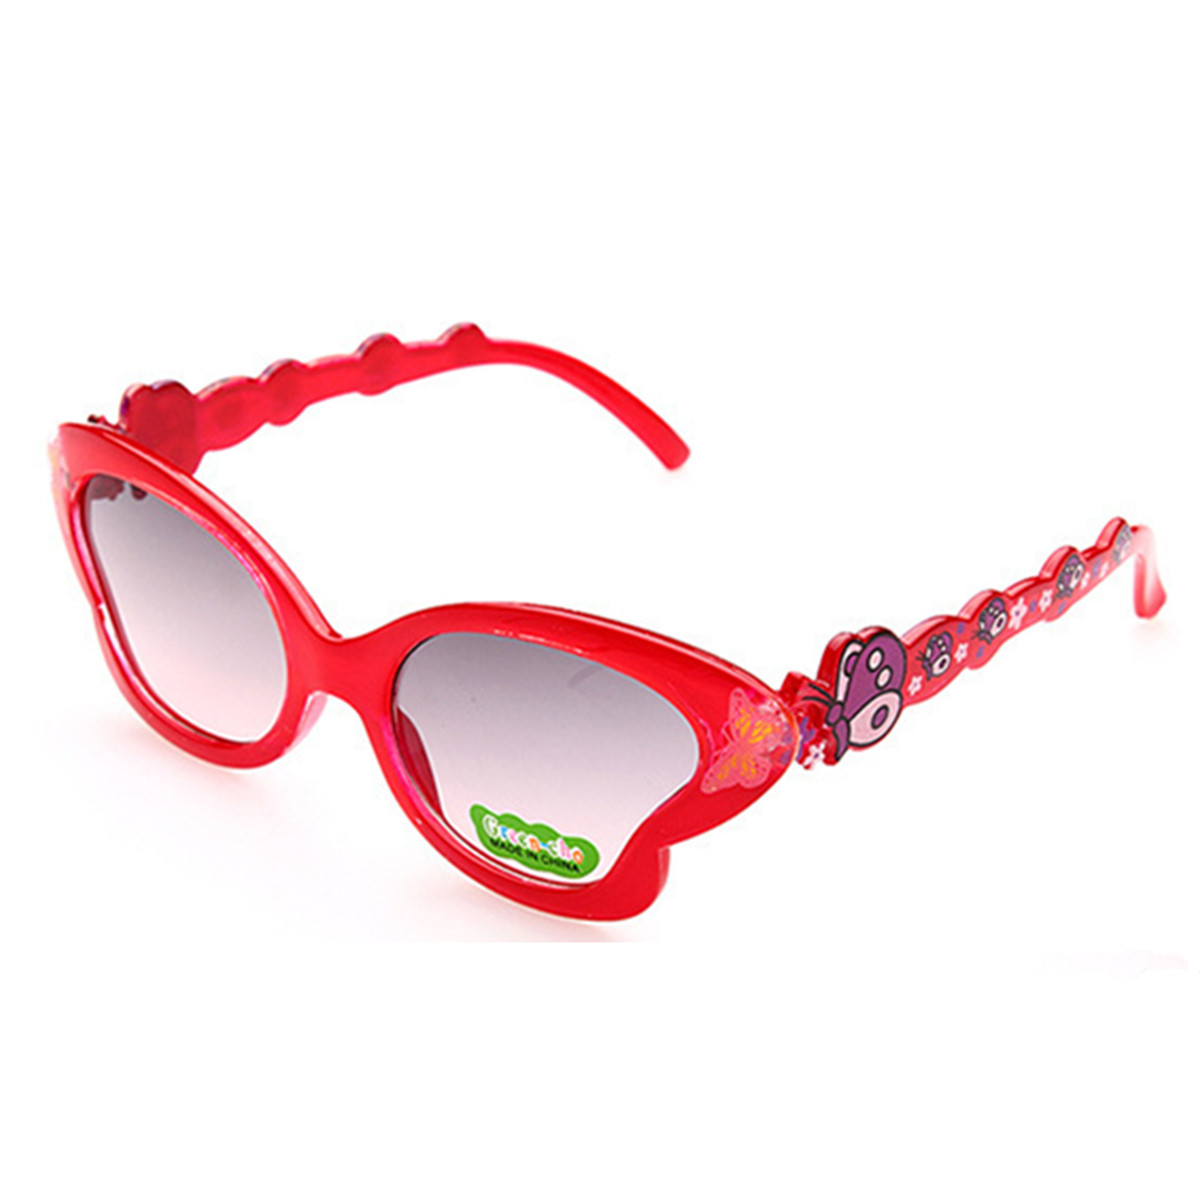 Kids Sports Eyeglasses